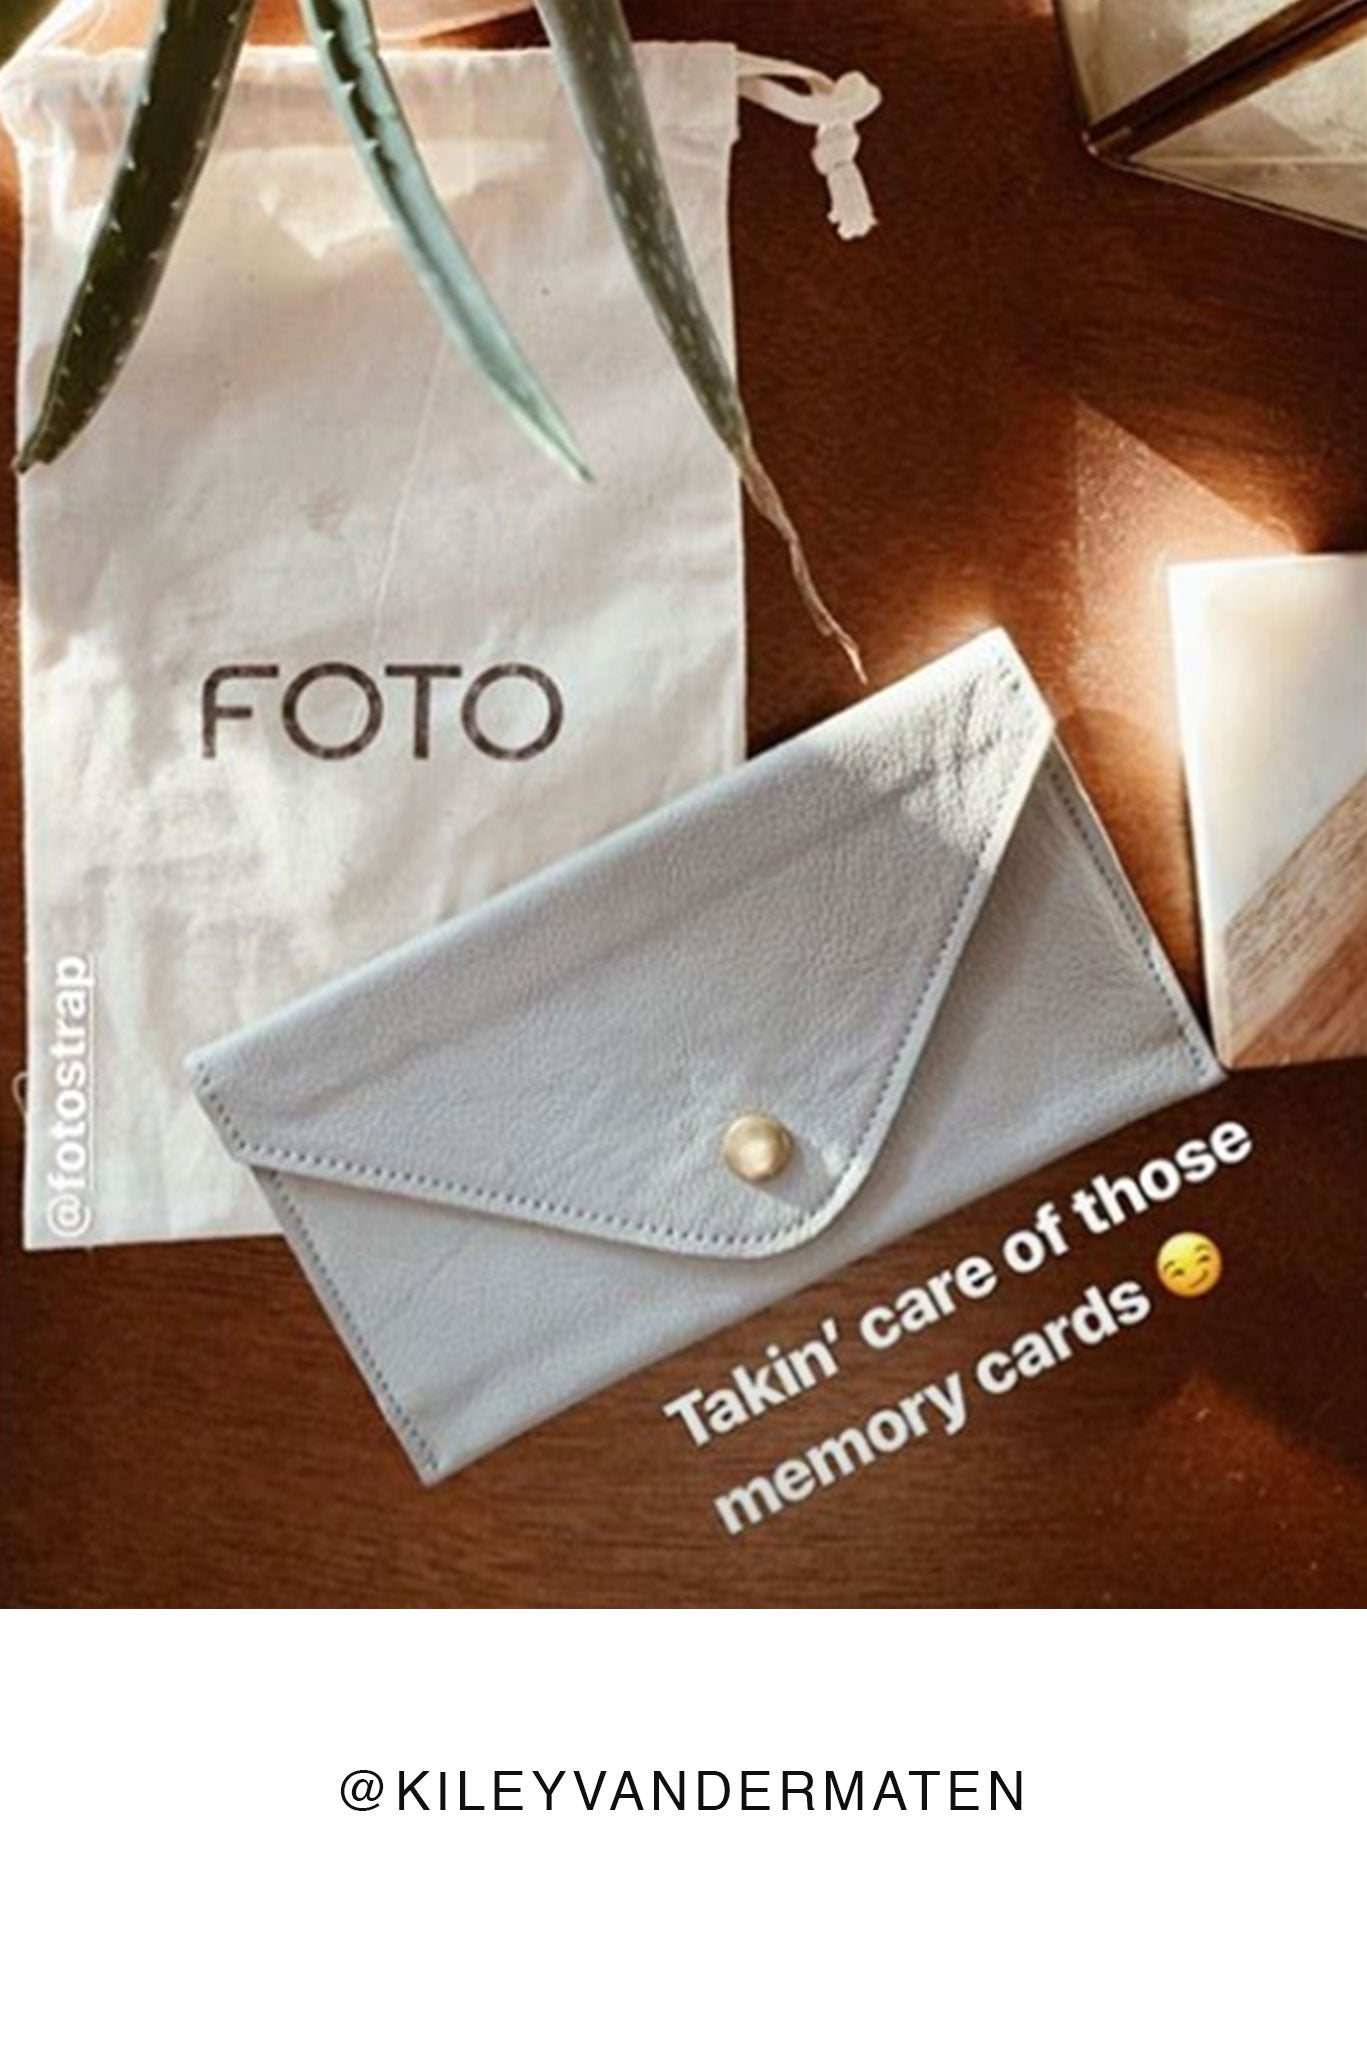 FOTO | Dove Memory Card Wallet - a dove grey pebbled leather SD and Compact Flash Memory Card holder that coordinates with our Dove Designer Fotostrap camera strap and can be personalized with a monogram or business logo, making it the perfect gift for the photographer in your life!